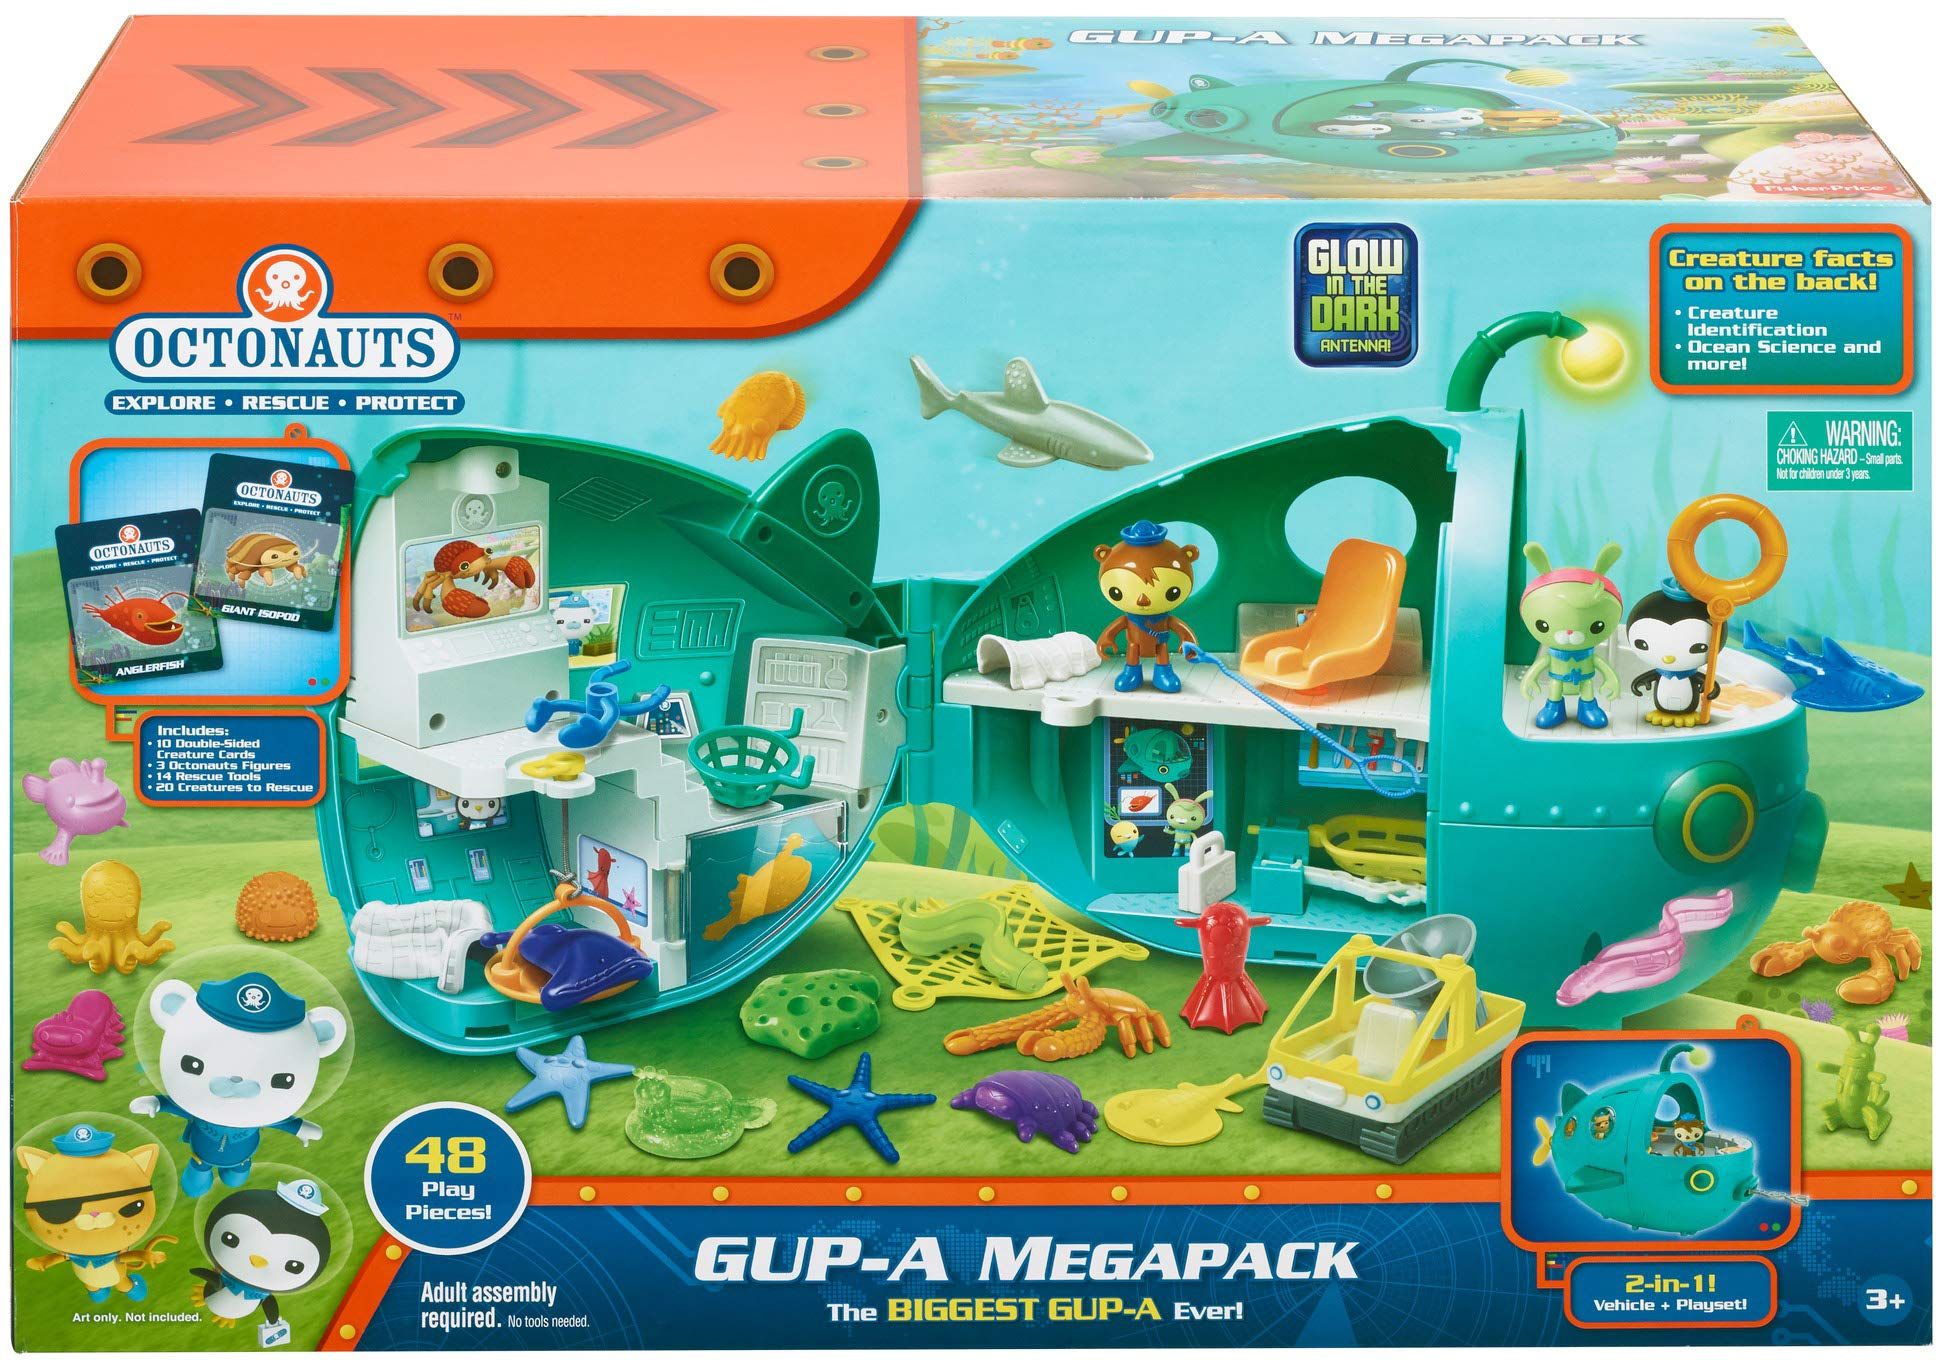 Fisher-Price Octonauts Gup-A Megapack [Amazon Exclusive] by Fisher-Price (Image #5)